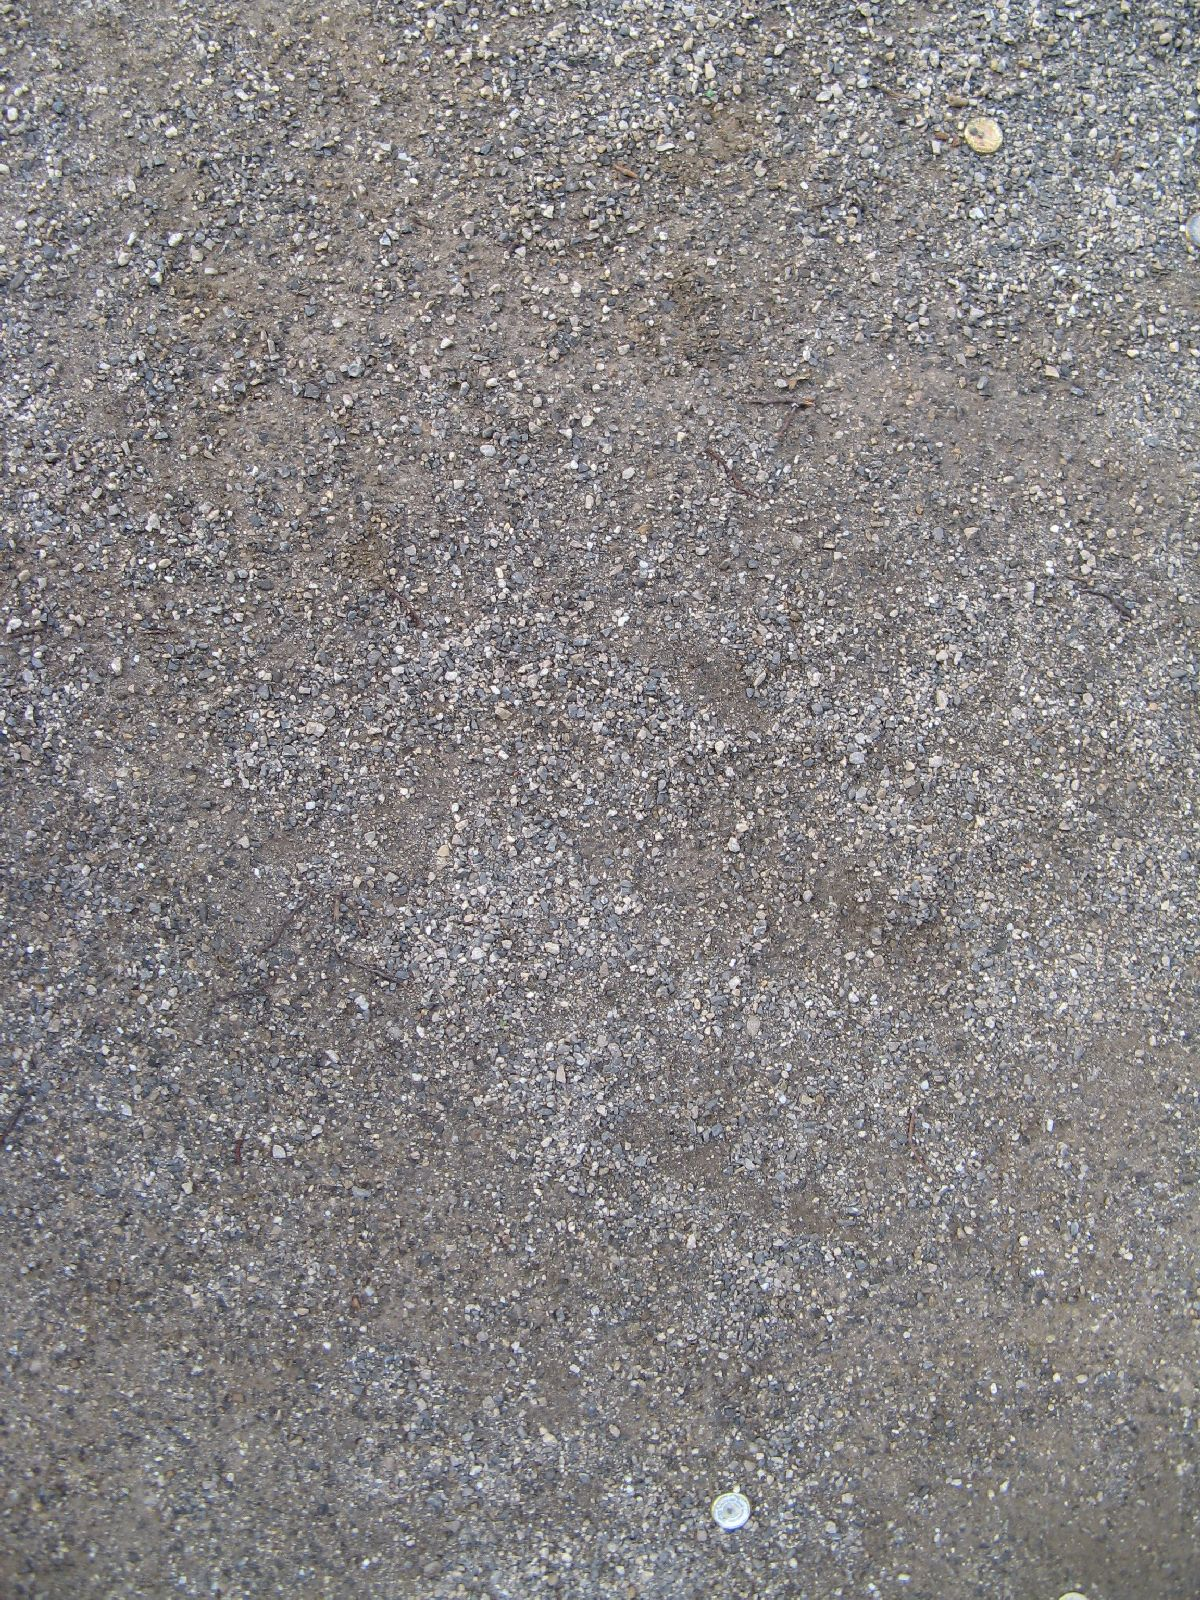 Ground-Nature_Texture_B_0885